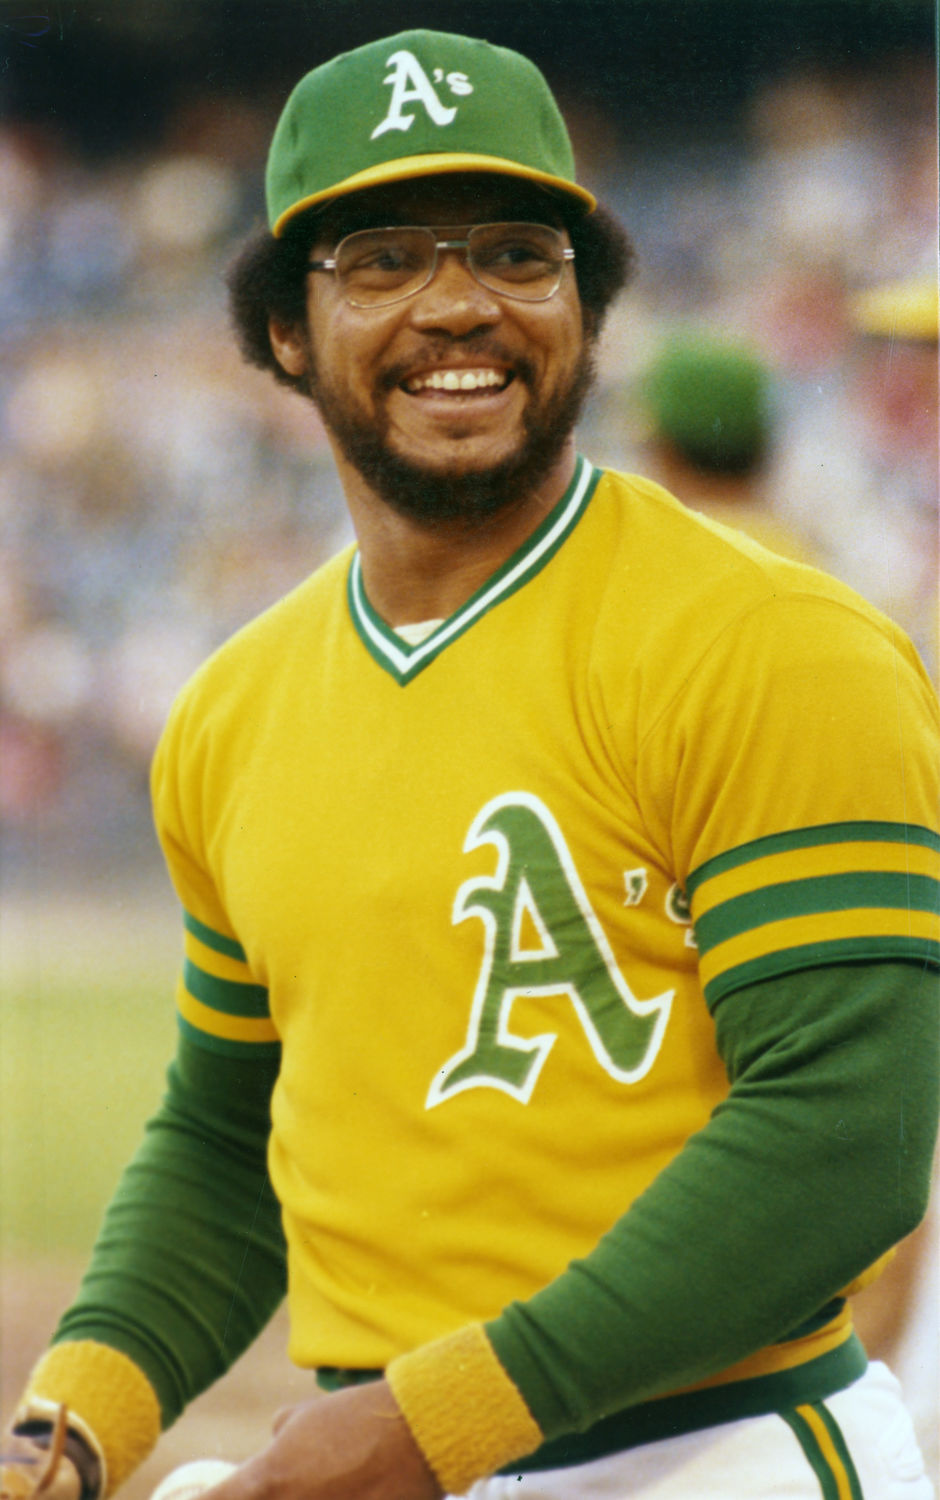 3c74d6094701 Over 21 seasons with the A's, Orioles, Yankees and Angels, Reggie Jackson  hit 563 home runs and played on five World Series winners.